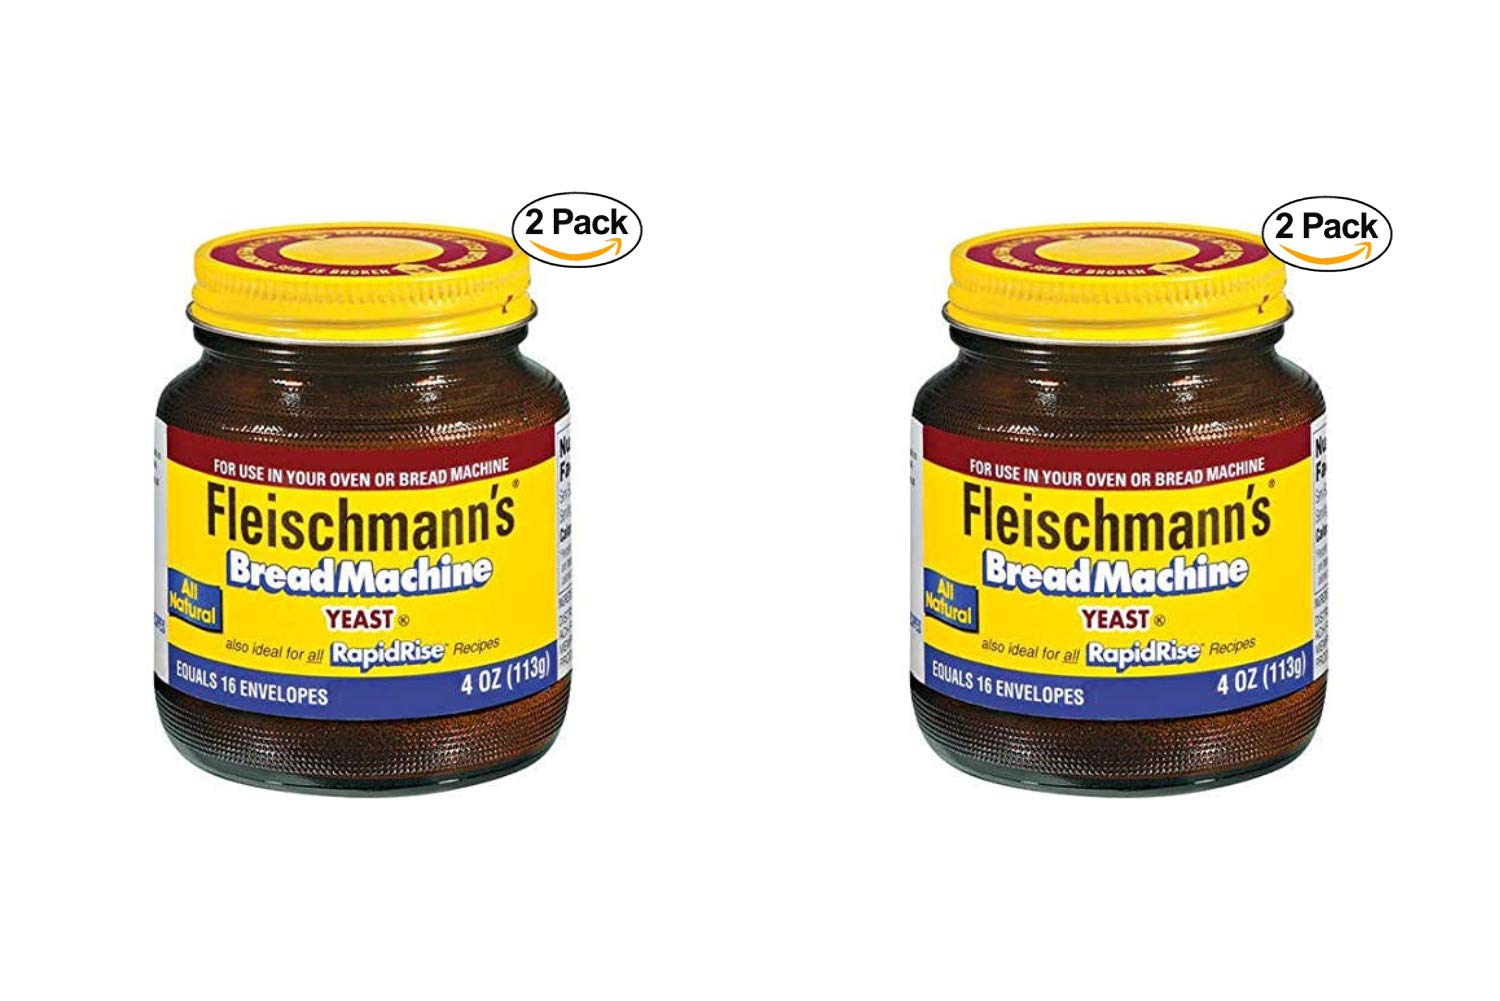 Fleischmann's Bread Machine Yeast, Also Ideal for All Rapid Rise Recipes, Equals 16 Envelopes, 113 Grams Jar (Pack of 2) (2 Pack)